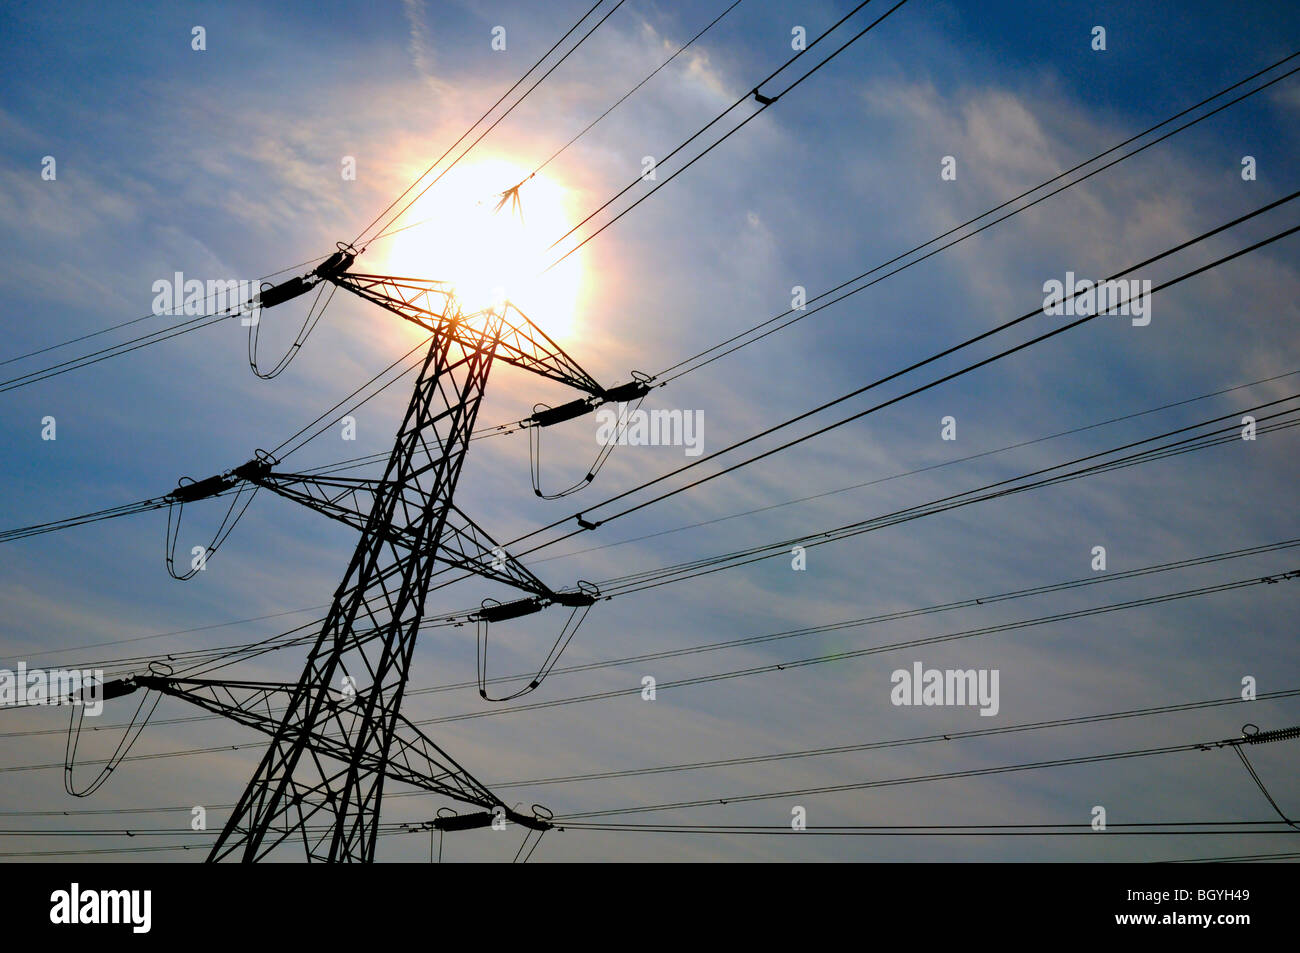 Electricity pylons with sun - Stock Image